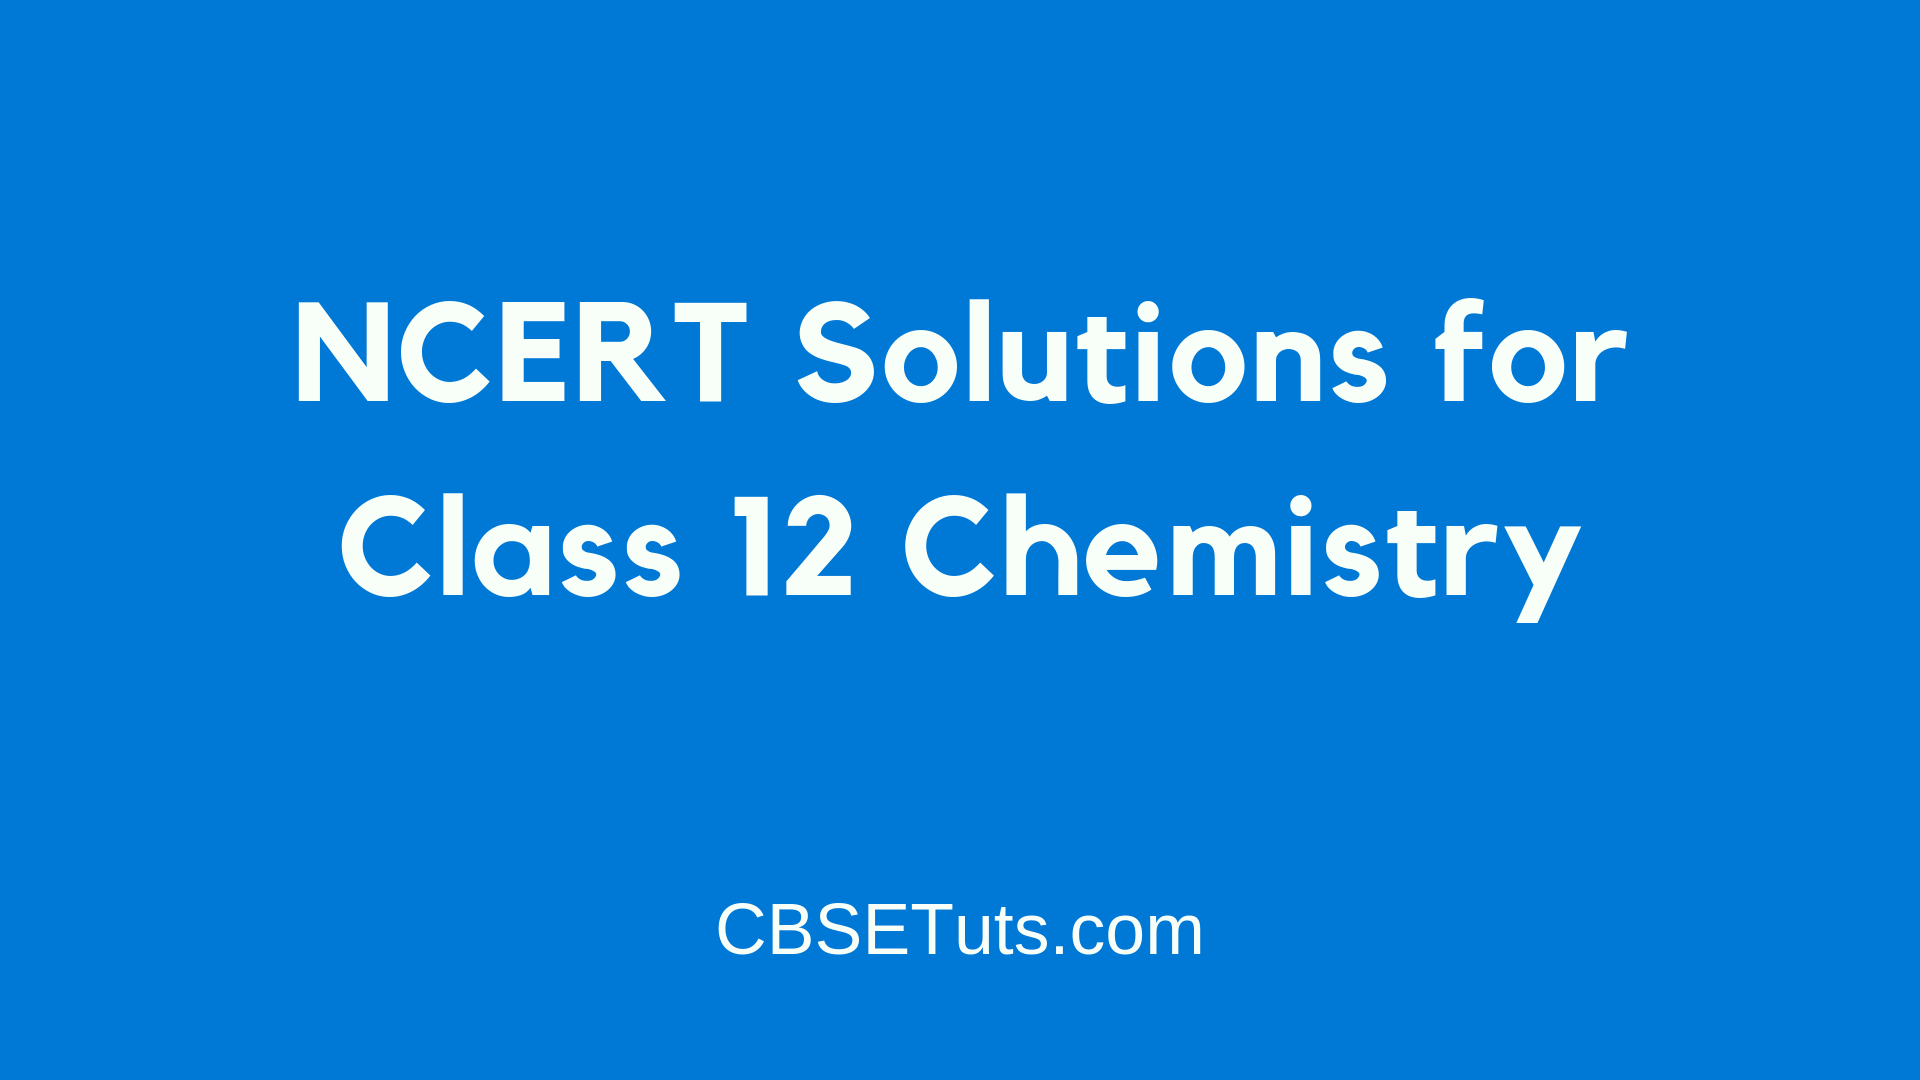 NCERT Solutions for Class 12 Chemistry - CBSE Tuts